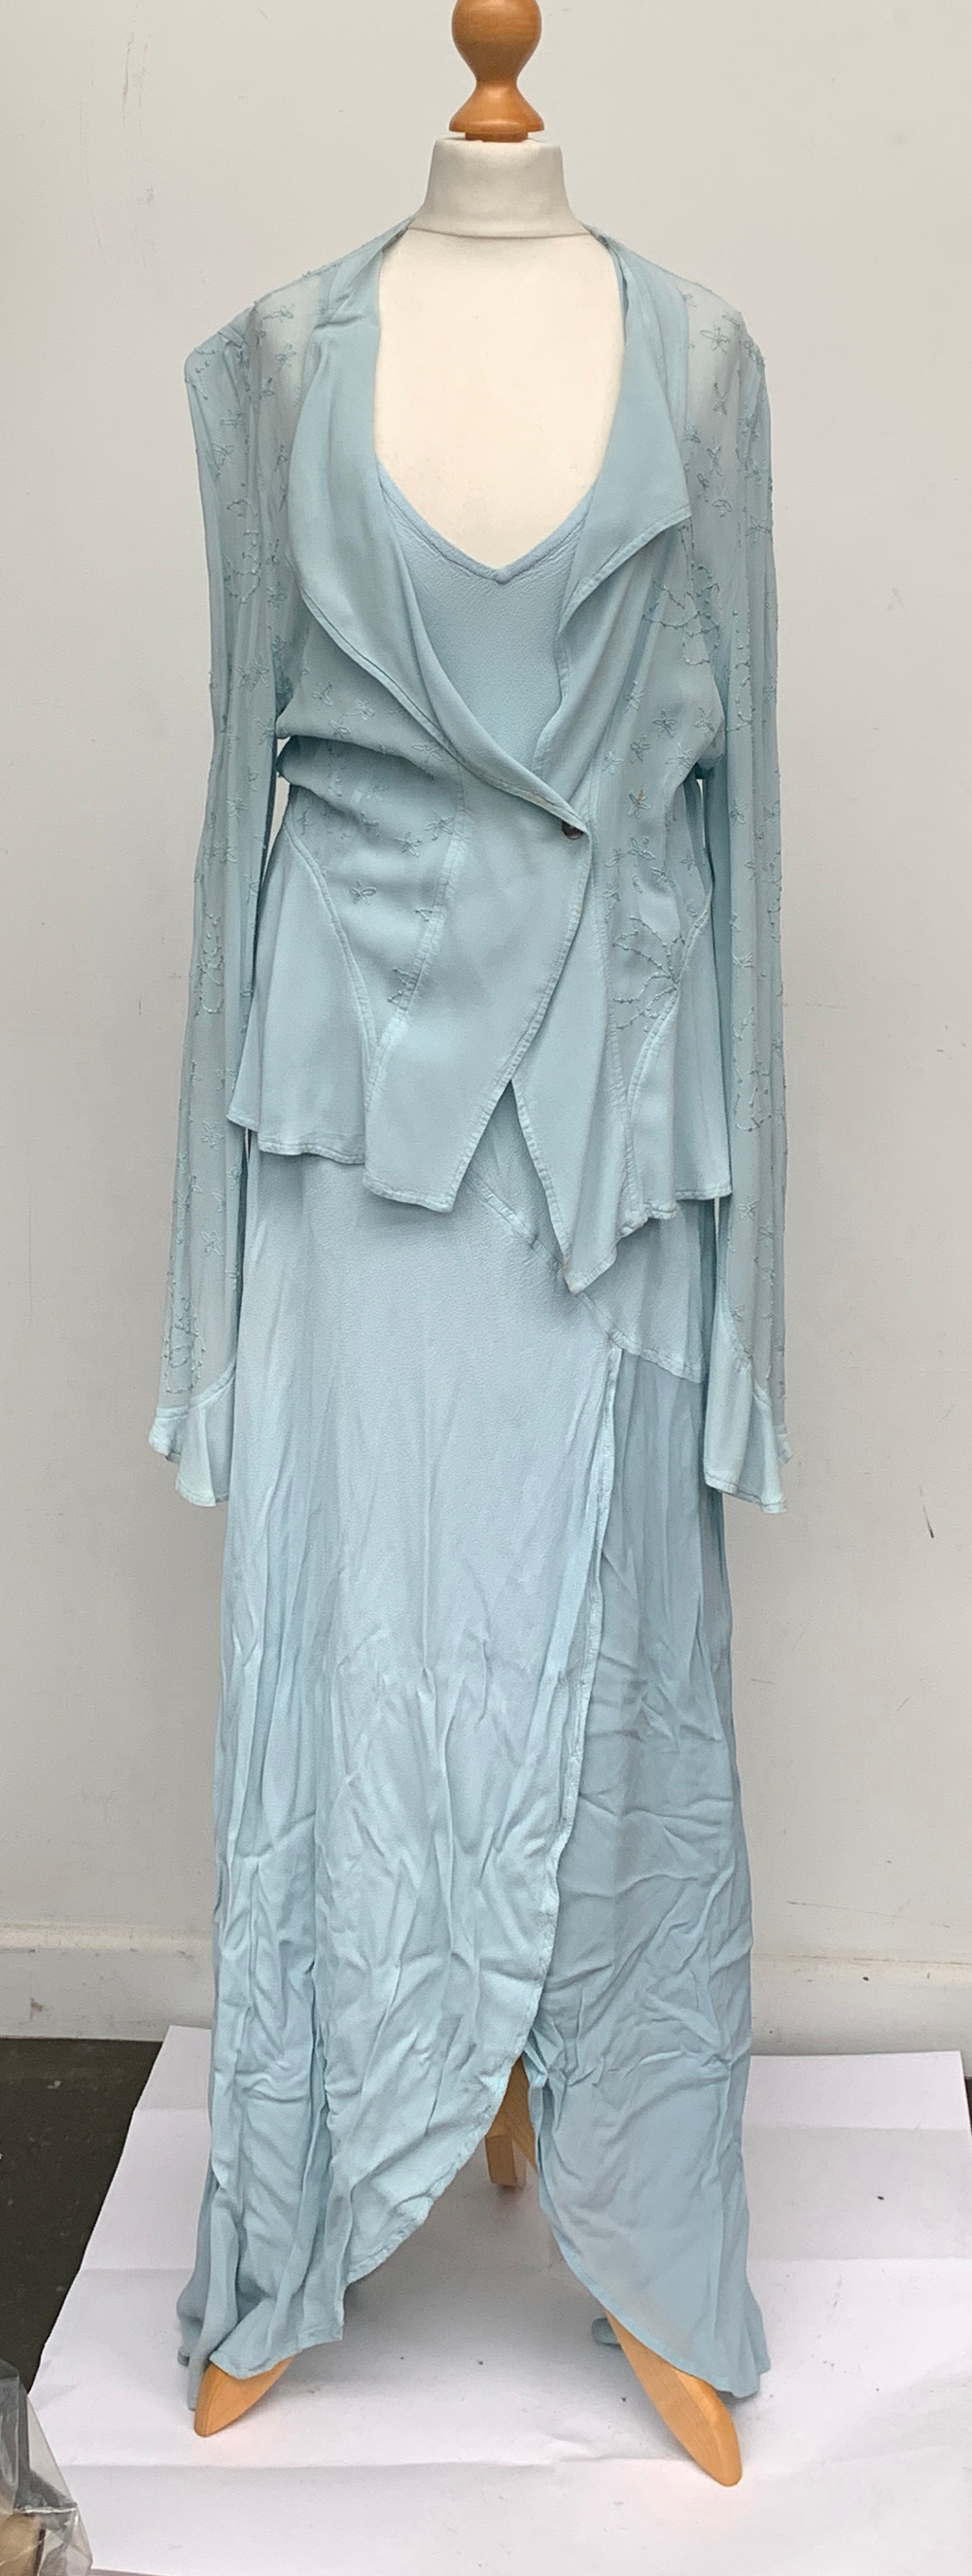 A Ghost jacket and dress, size medium, the dress medium the jacket large; together with a Donald